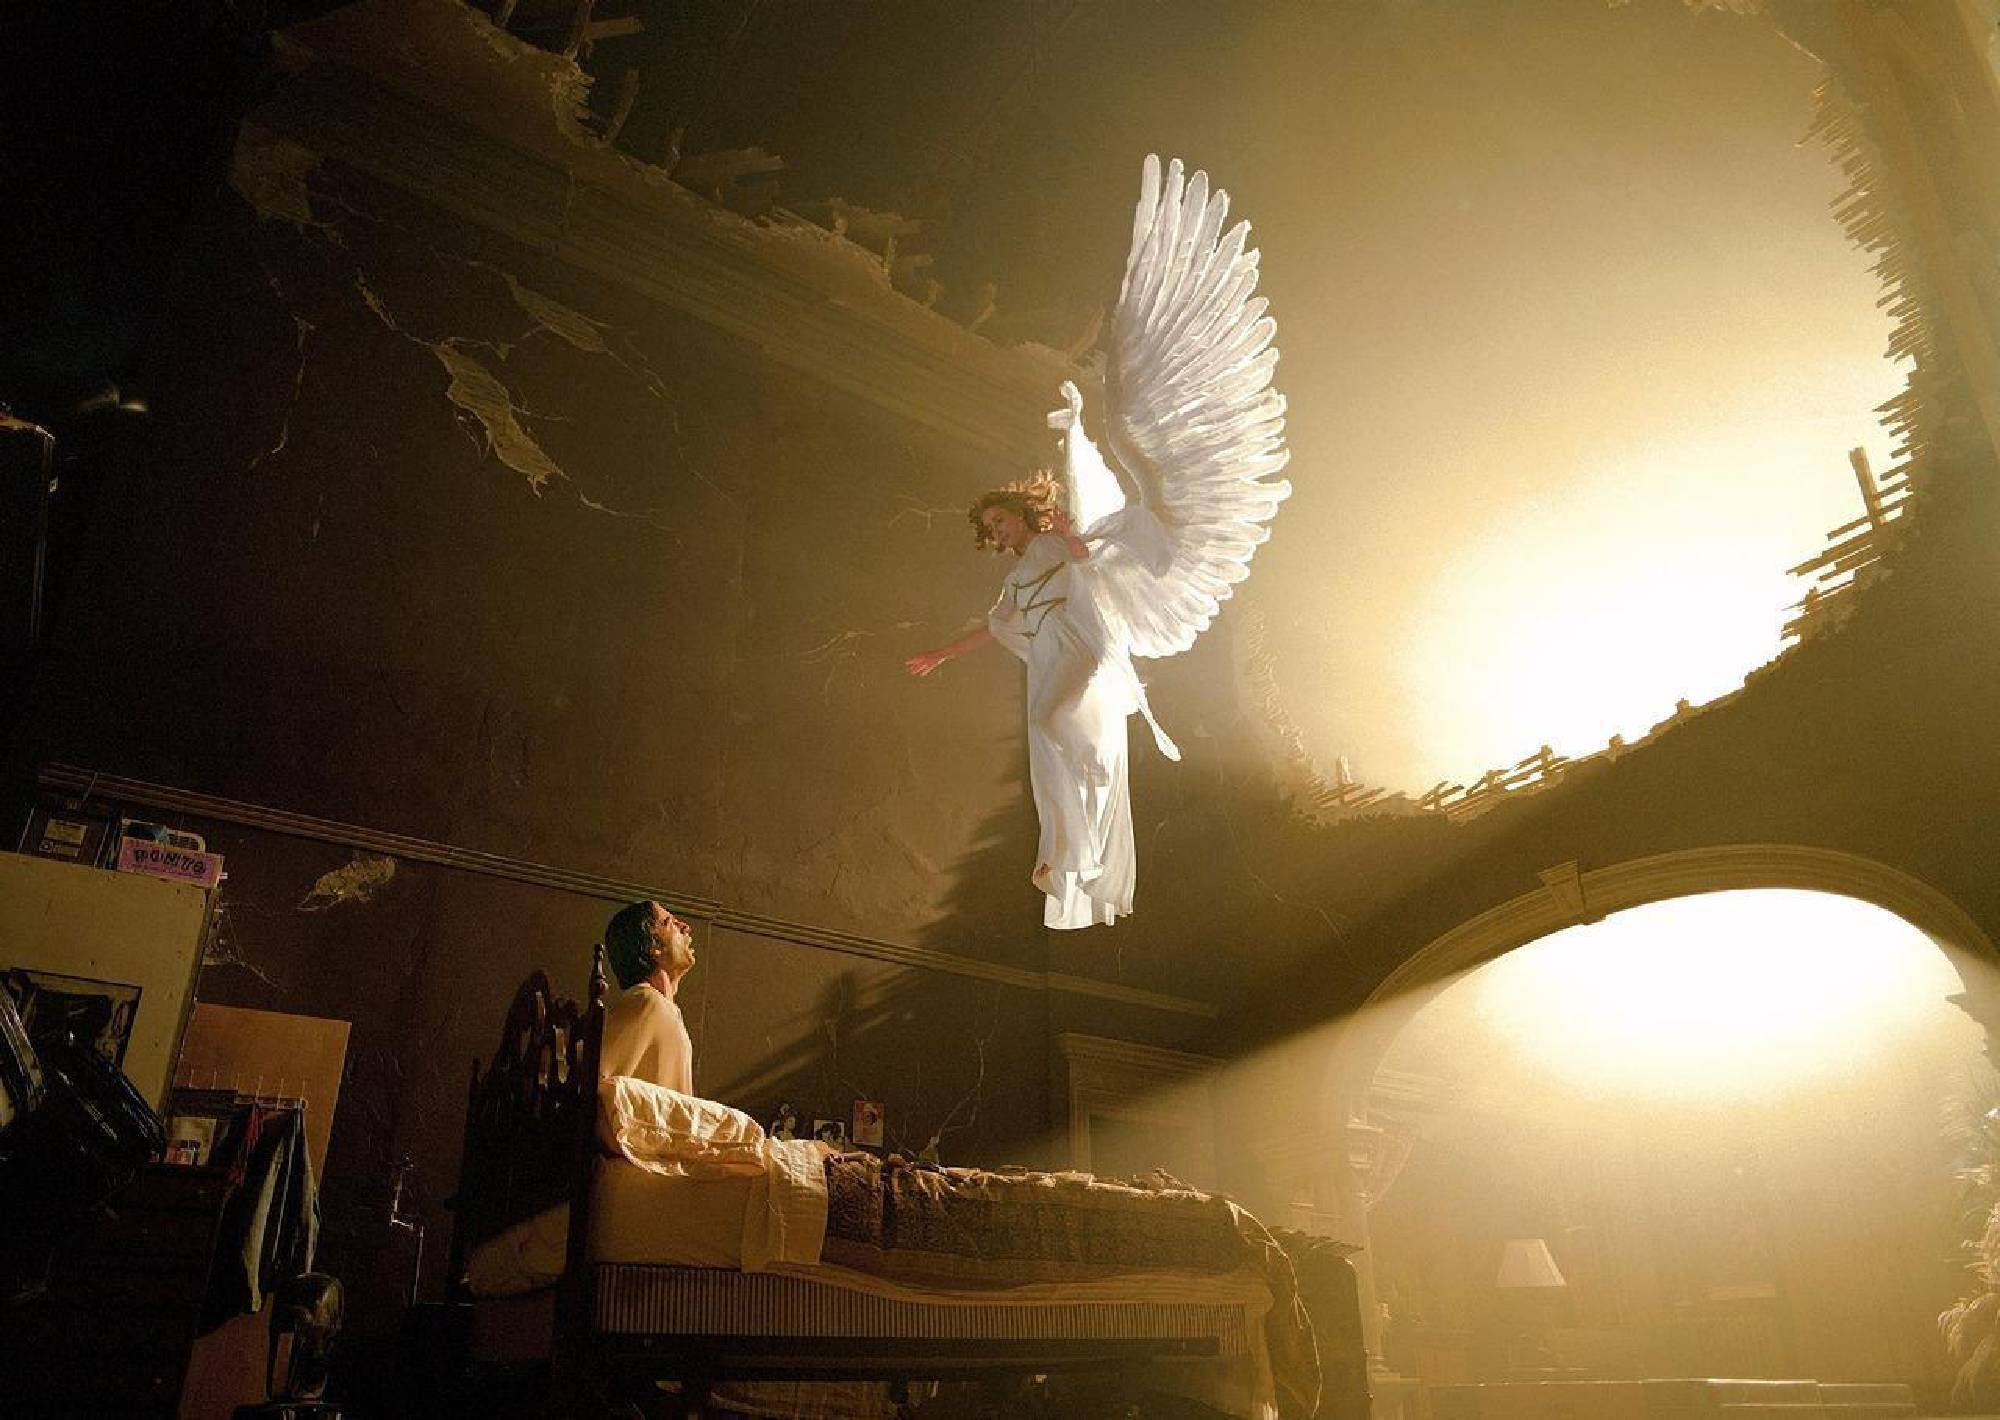 Another Strong And Powerful Prayer To Your Guardian Angels